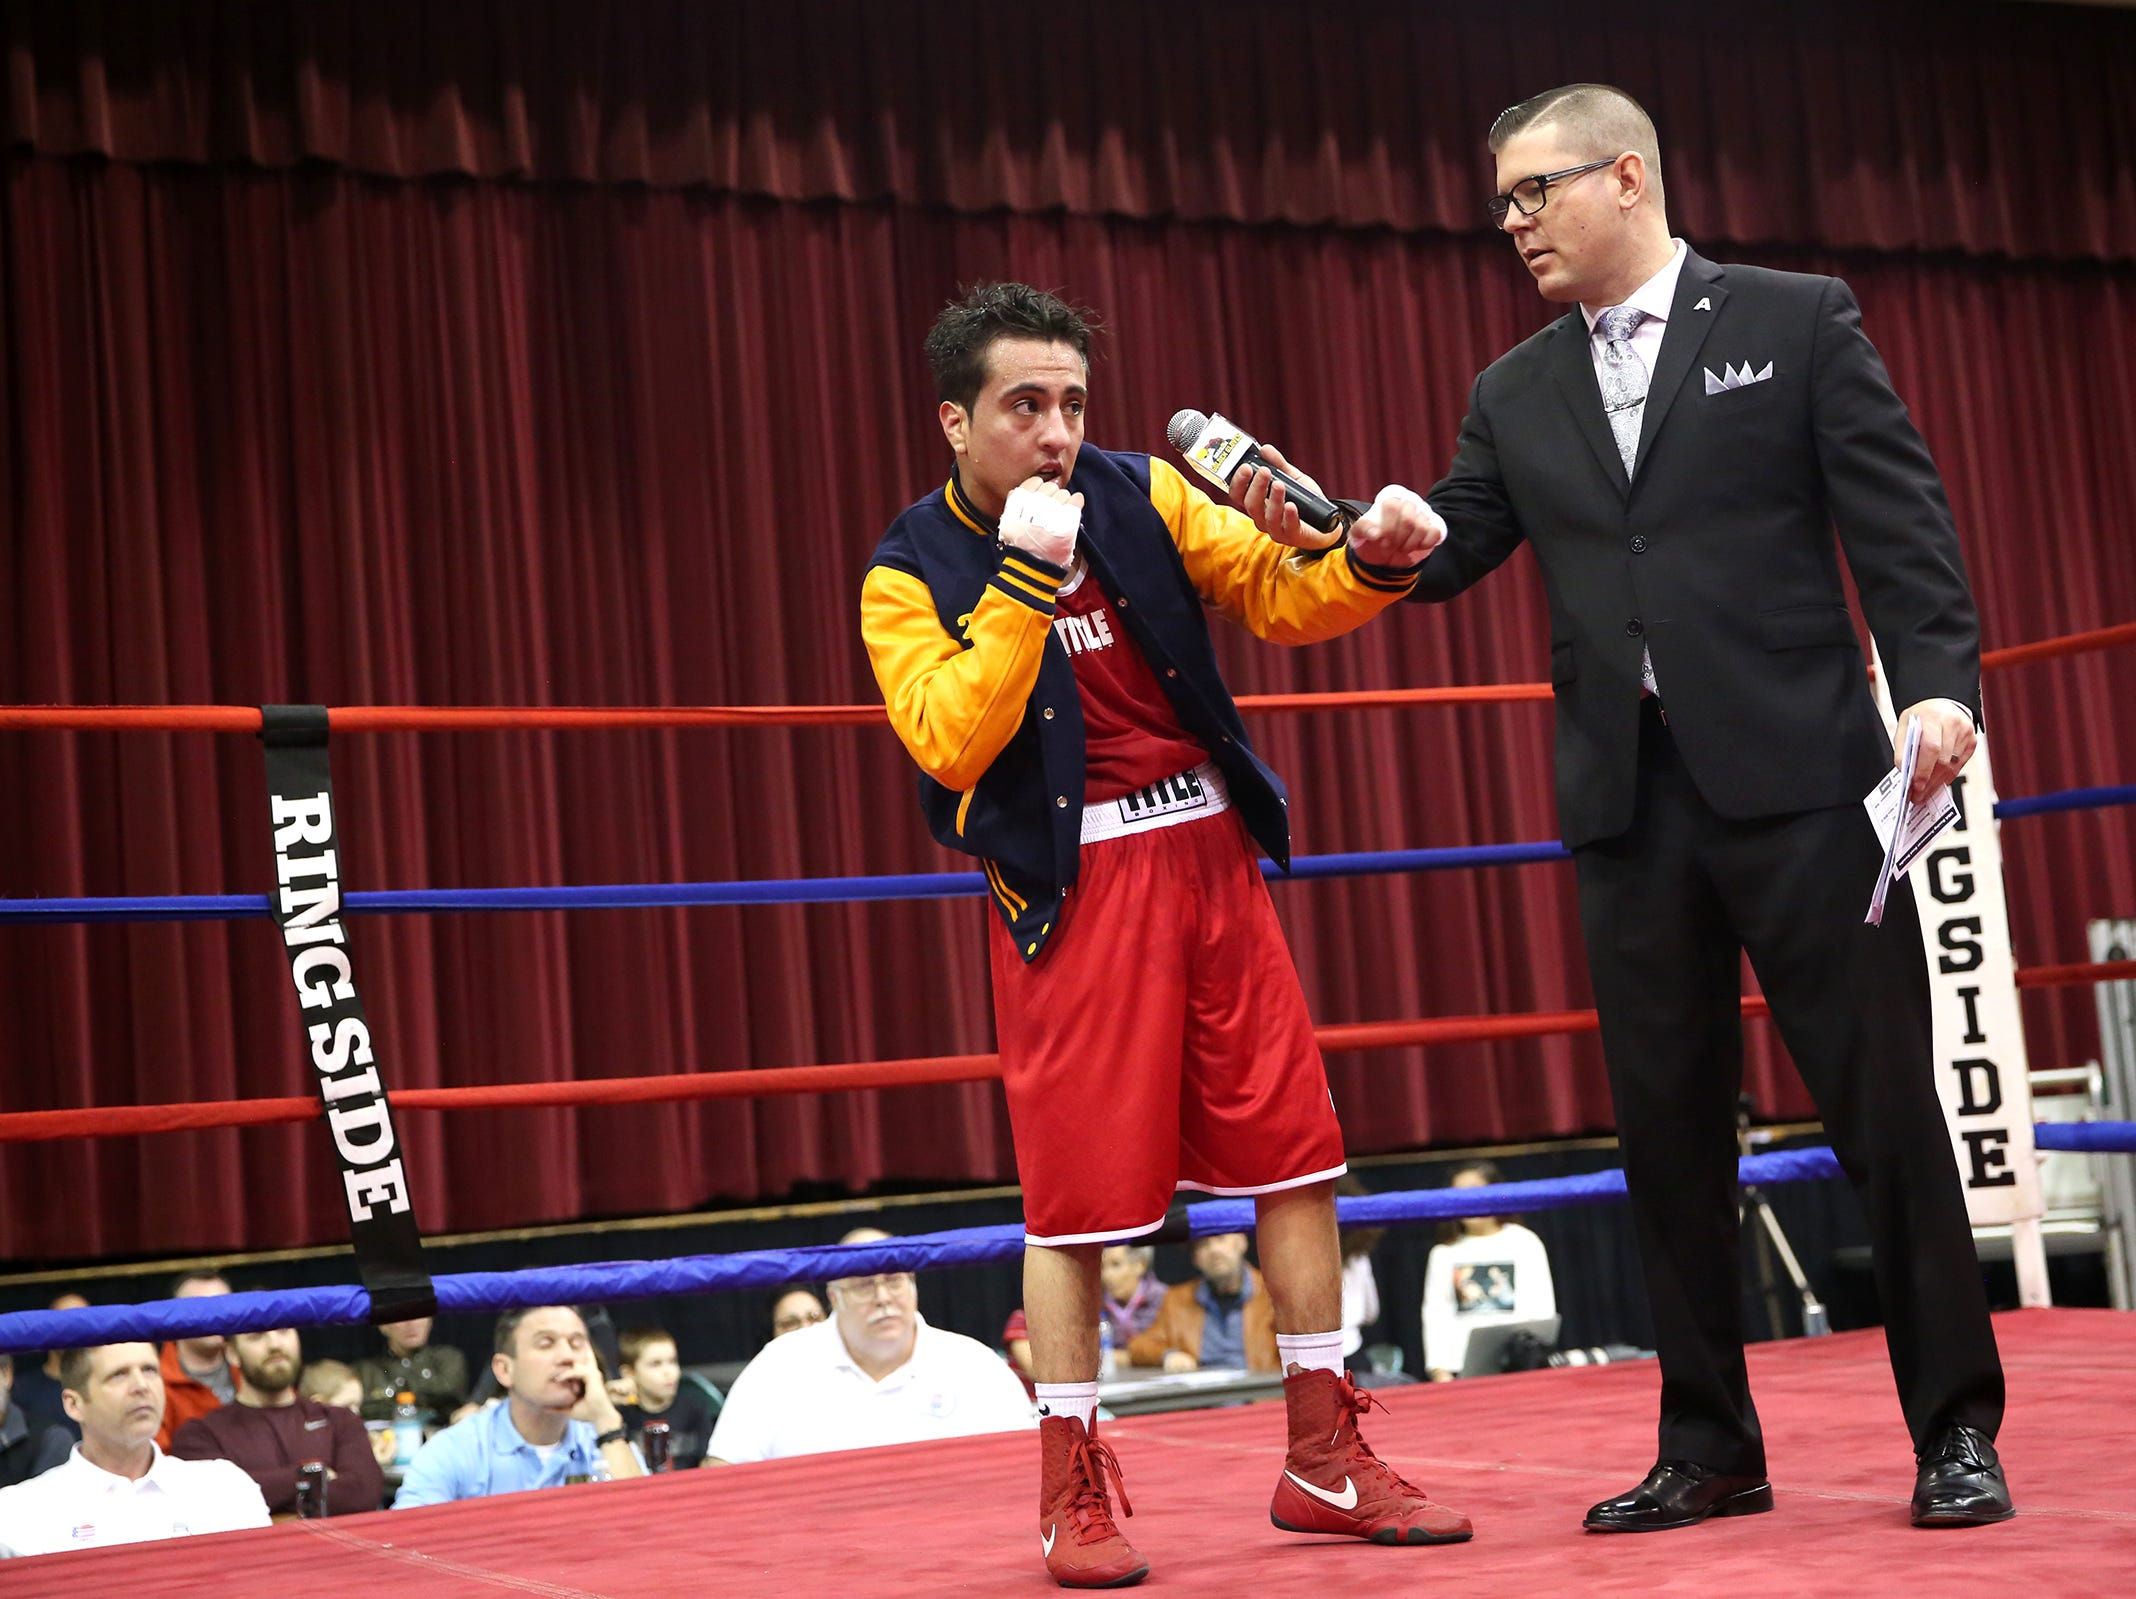 Jonathan Pena of Salem is pronounced victorious at the Oregon Golden Gloves championship matches at the Salem Armory on Saturday, Feb. 2, 2019.